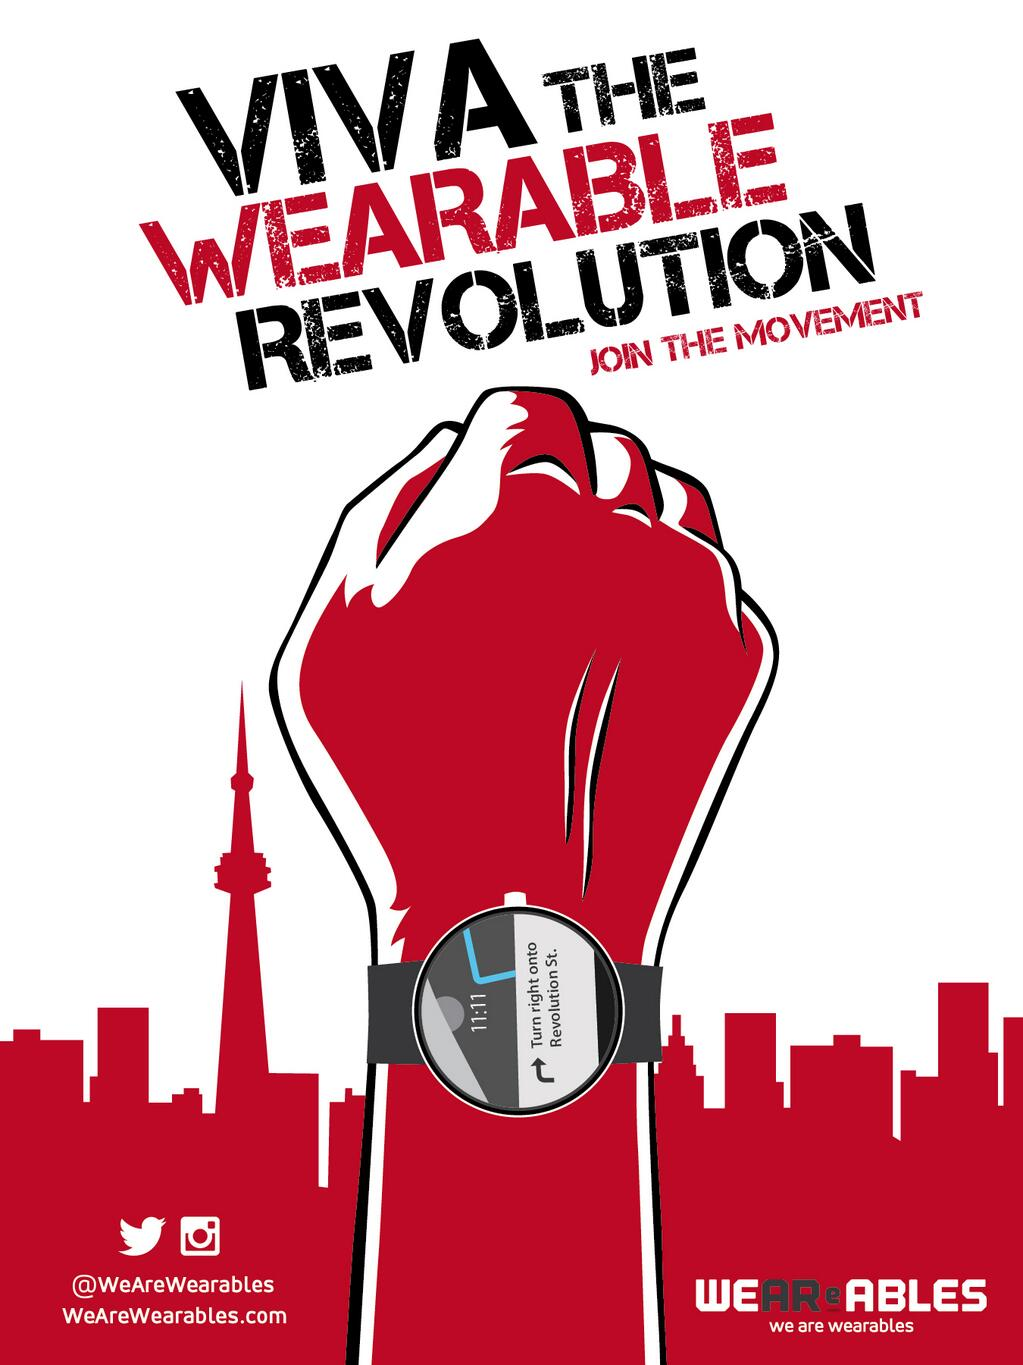 wearewearables :     Welcome to the Wearables Revolution: We Are Wearables   Hi Everyone! It's Tom the guy behind all 1,606 (now 1,607) posts on this blog I started way back in 2011. I can't believe its been over four years! I've loved watching this community grow, reading your notes and seeing what you are all interested in when it comes to this amazing new world of emerging technology. Thank you for being such an awesome group of future junkies! But just as tech continues to change over time, it is time for this blog to evolve too. And I've got some exciting news for us as we move forward.    Keep reading       Long live the wearable! Check out (and contribute to) she++ challenge's  wearables project  for this month. You could win a pebble watch!